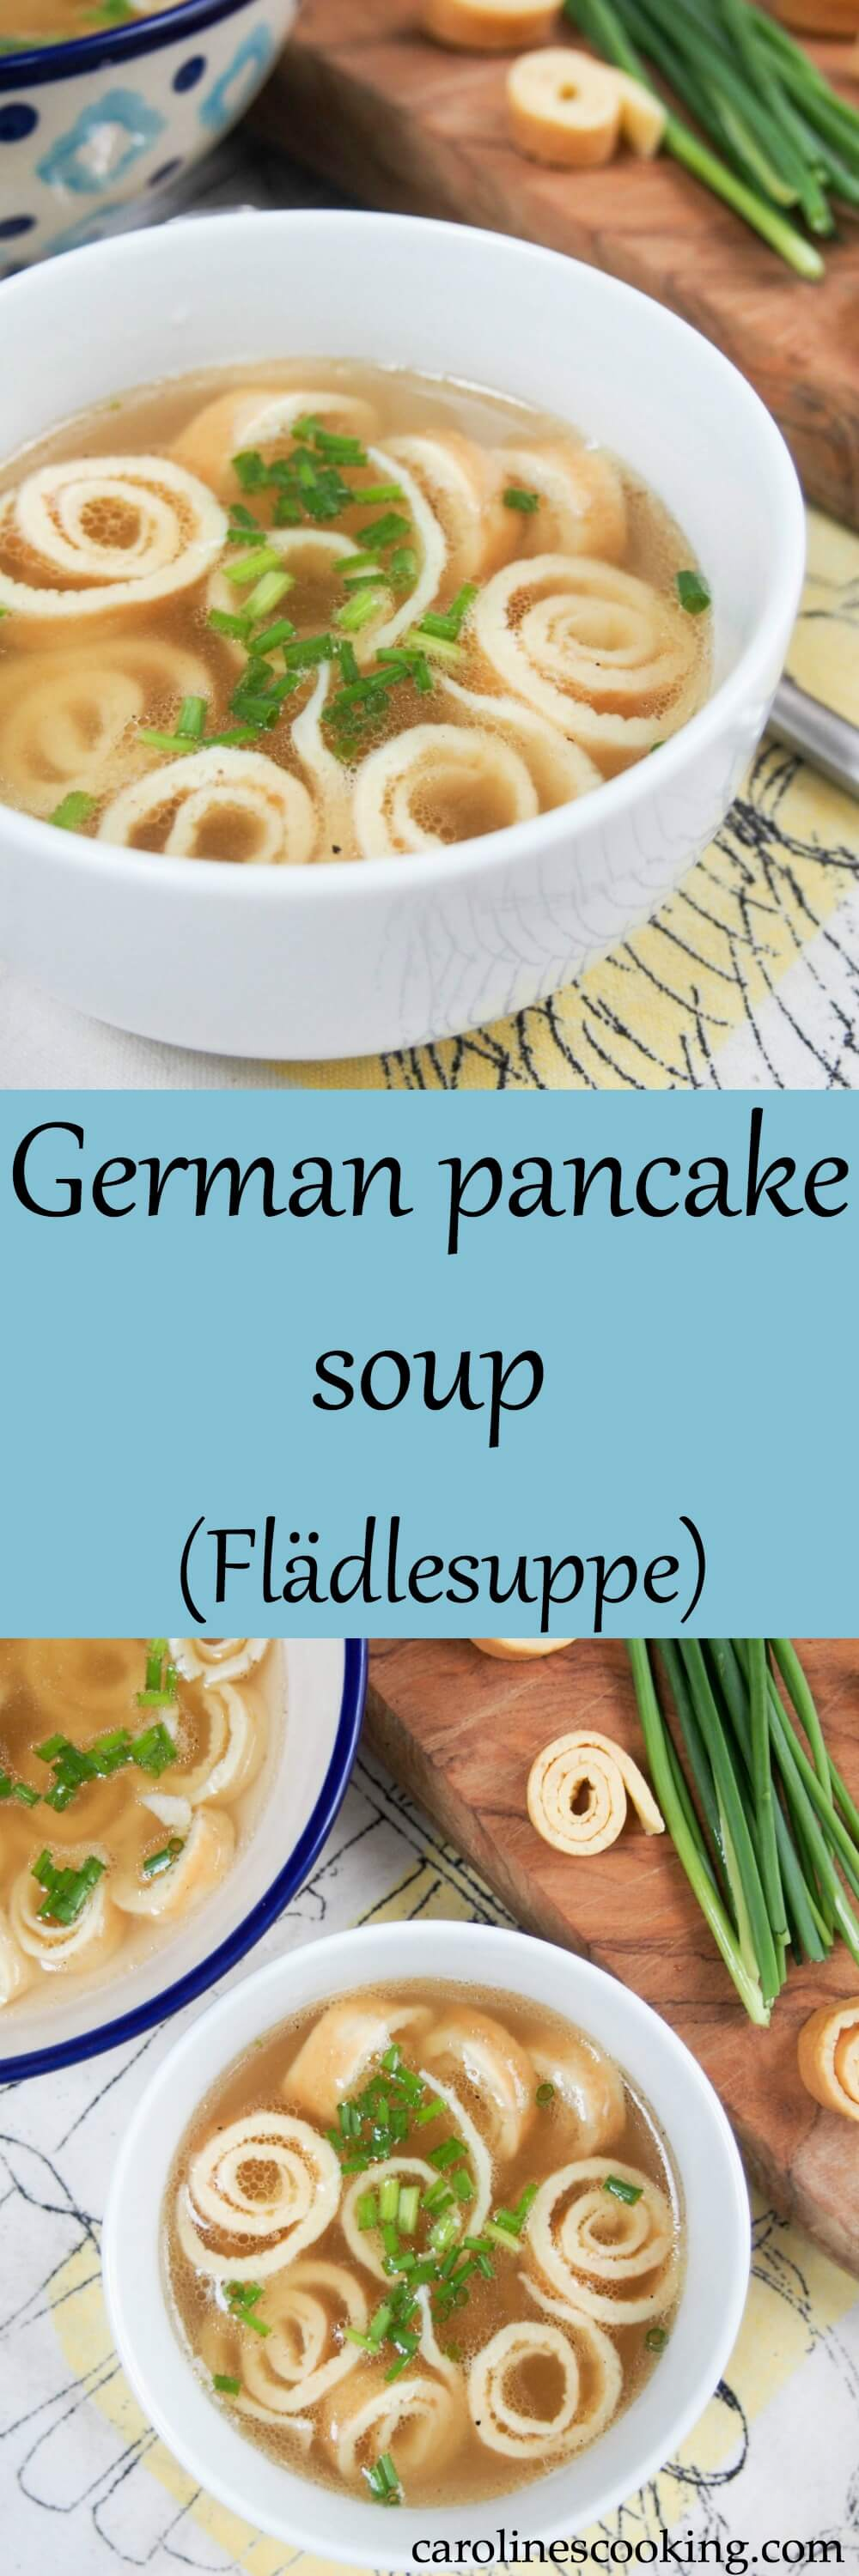 German pancake soup (Flädlesuppe) is a simple combination of broth with pancake 'noodles' that's tasty, comforting and a great cold-buster!